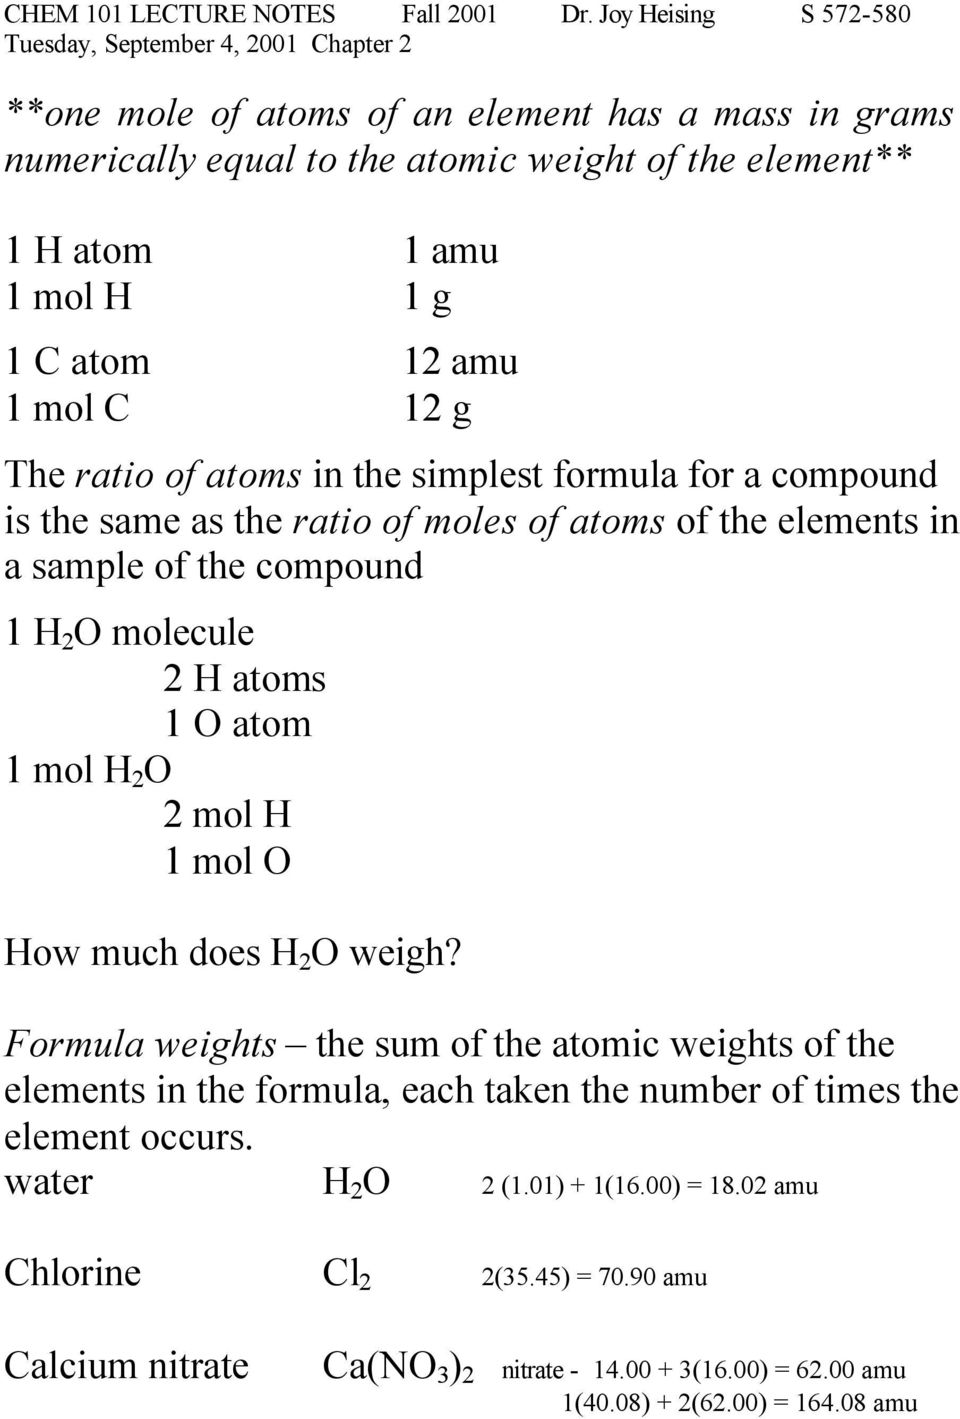 H 2 O 2 mol H 1 mol O How much does H 2 O weigh? Formula weights the sum of the atomic weights of the elements in the formula, each taken the number of times the element occurs.